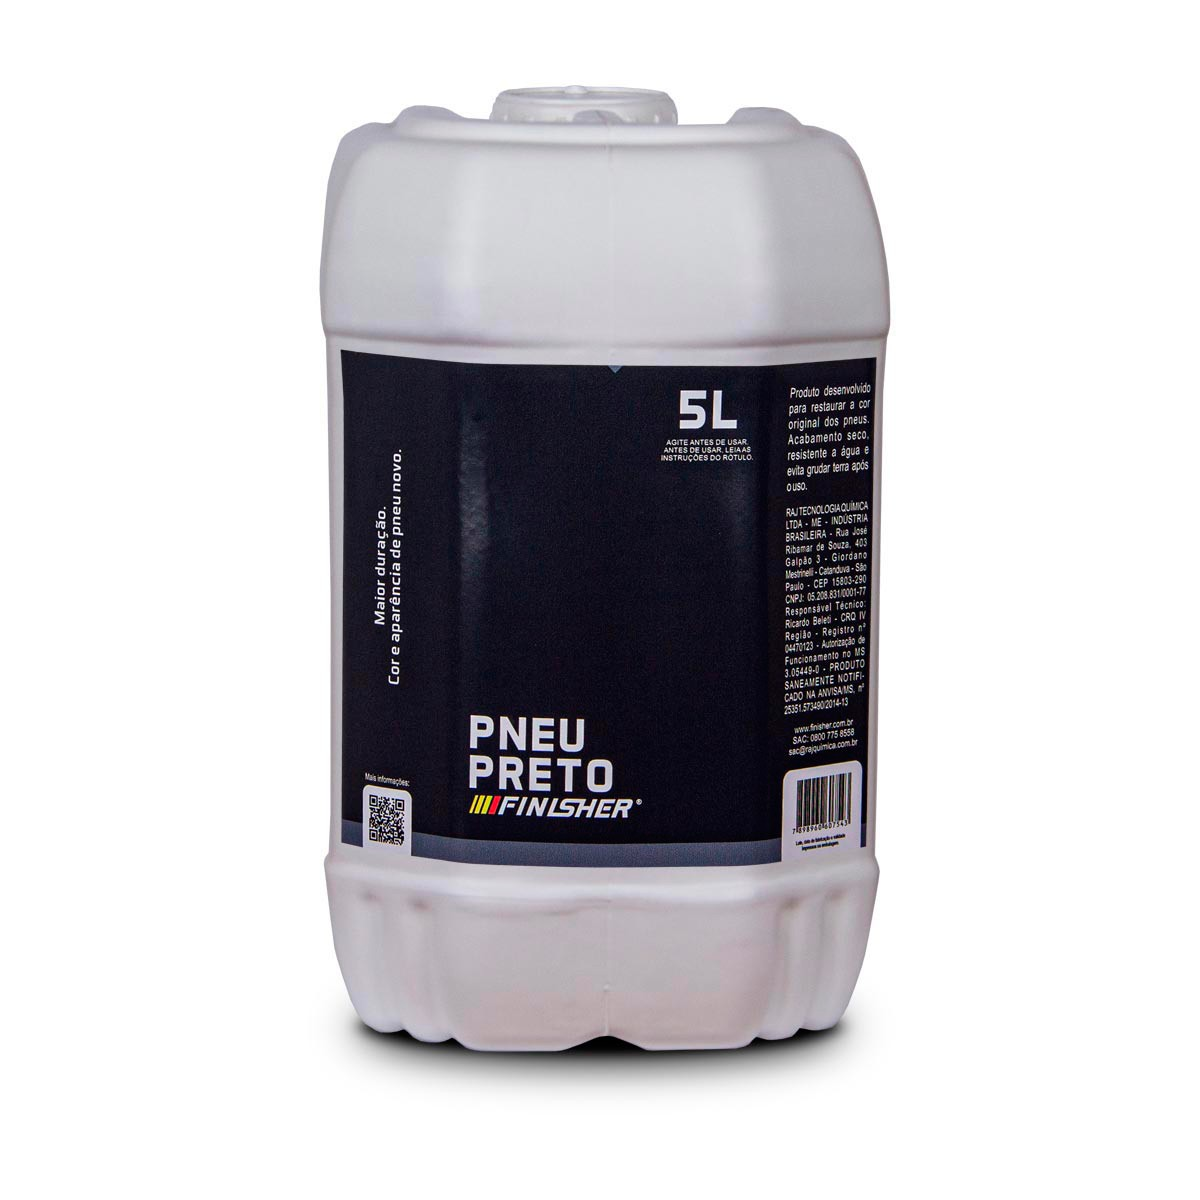 Pneu Preto 5L - Finisher